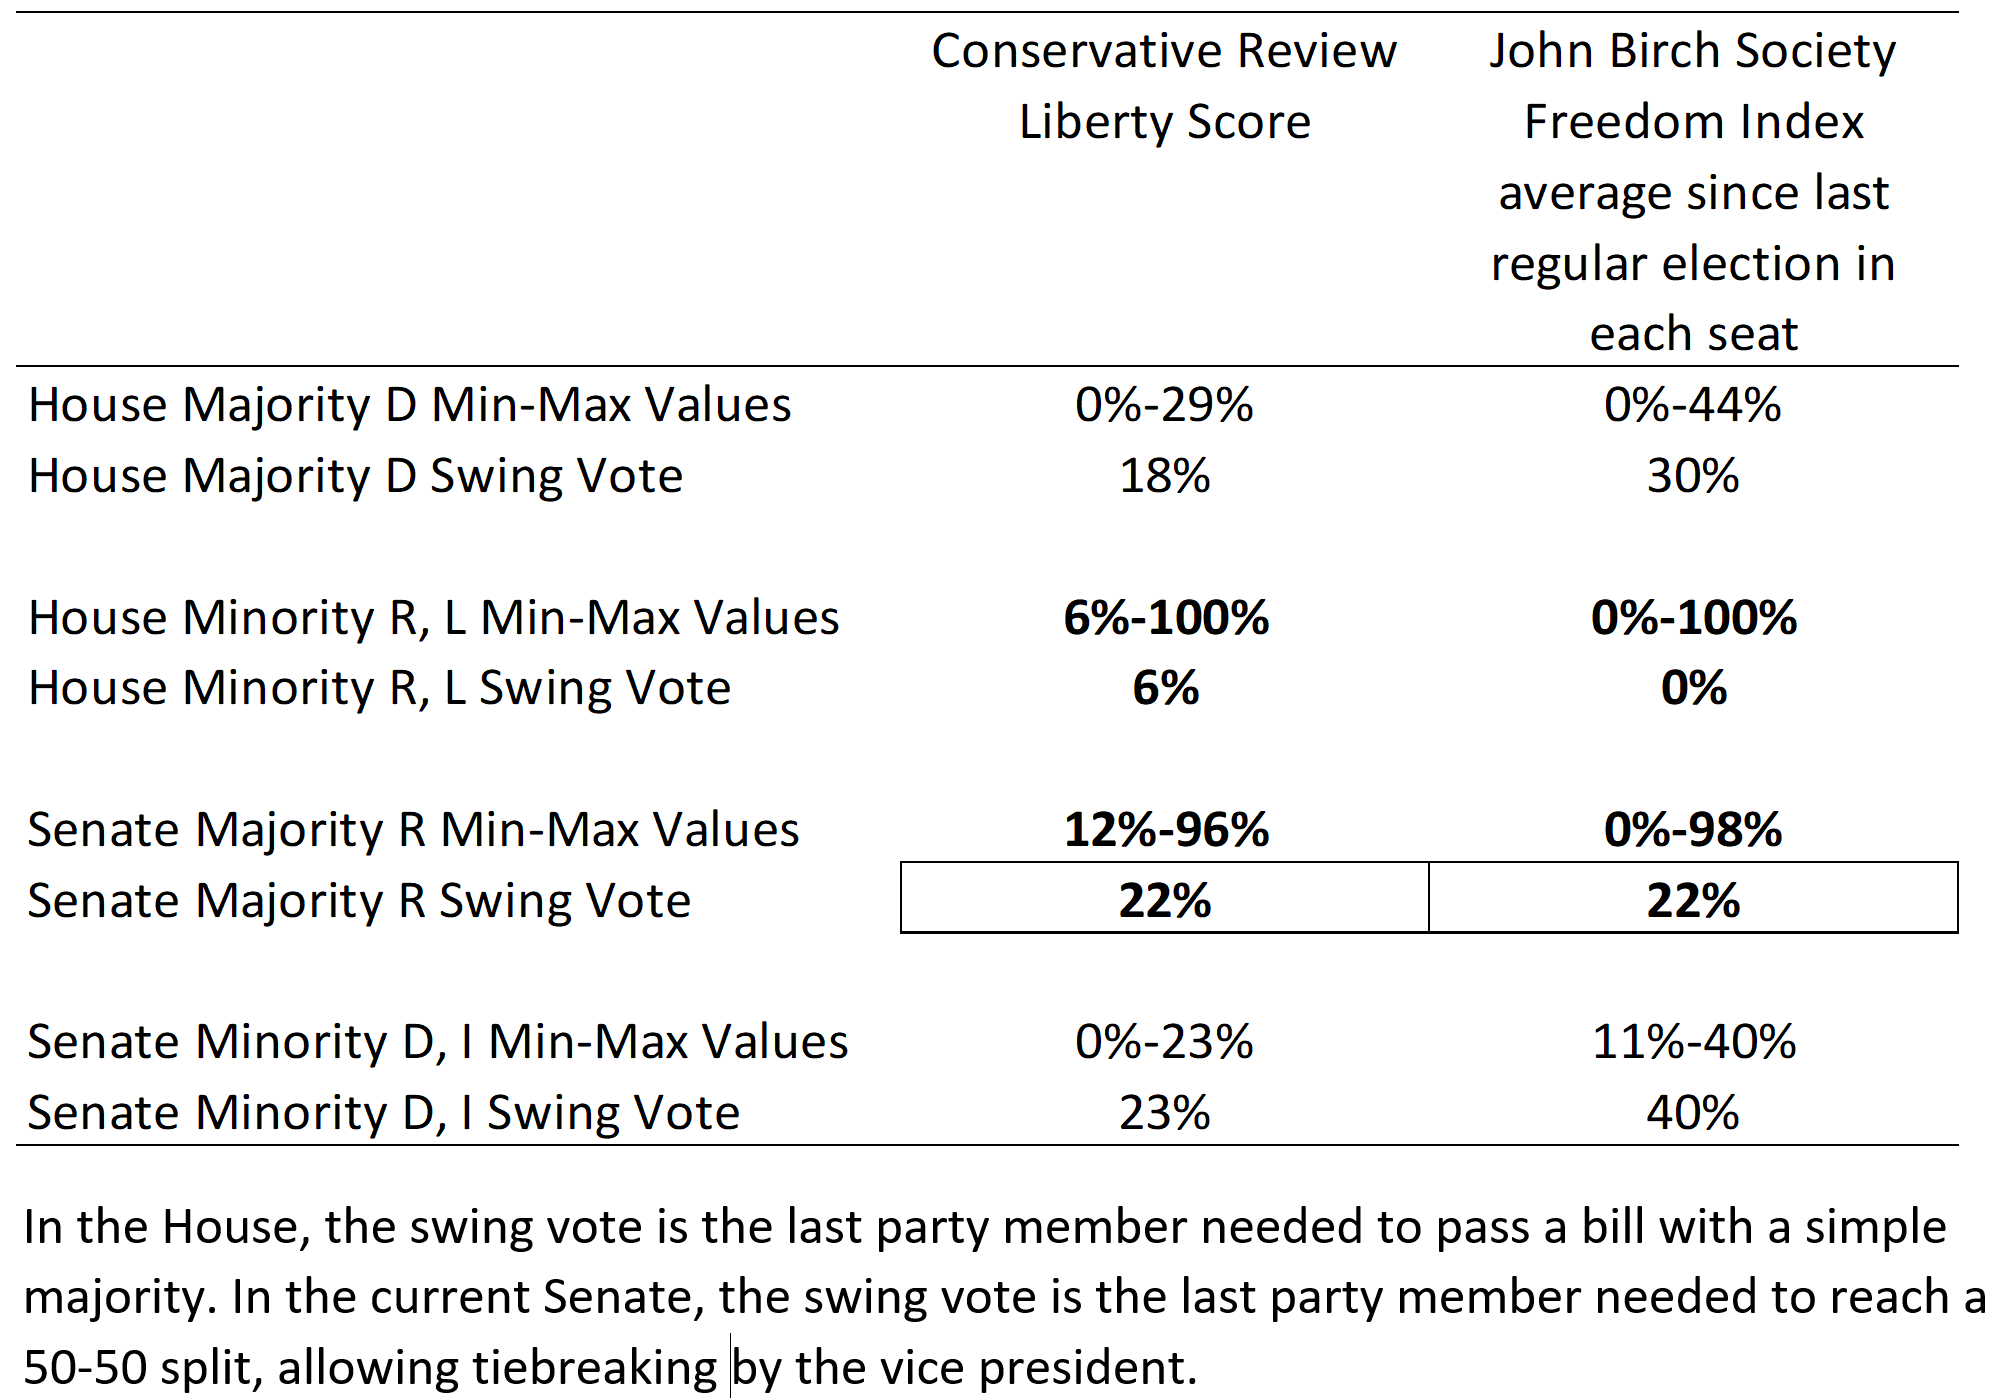 Table. Key Statistics as Measured by Conservative Review and John Birch Society Scoring.